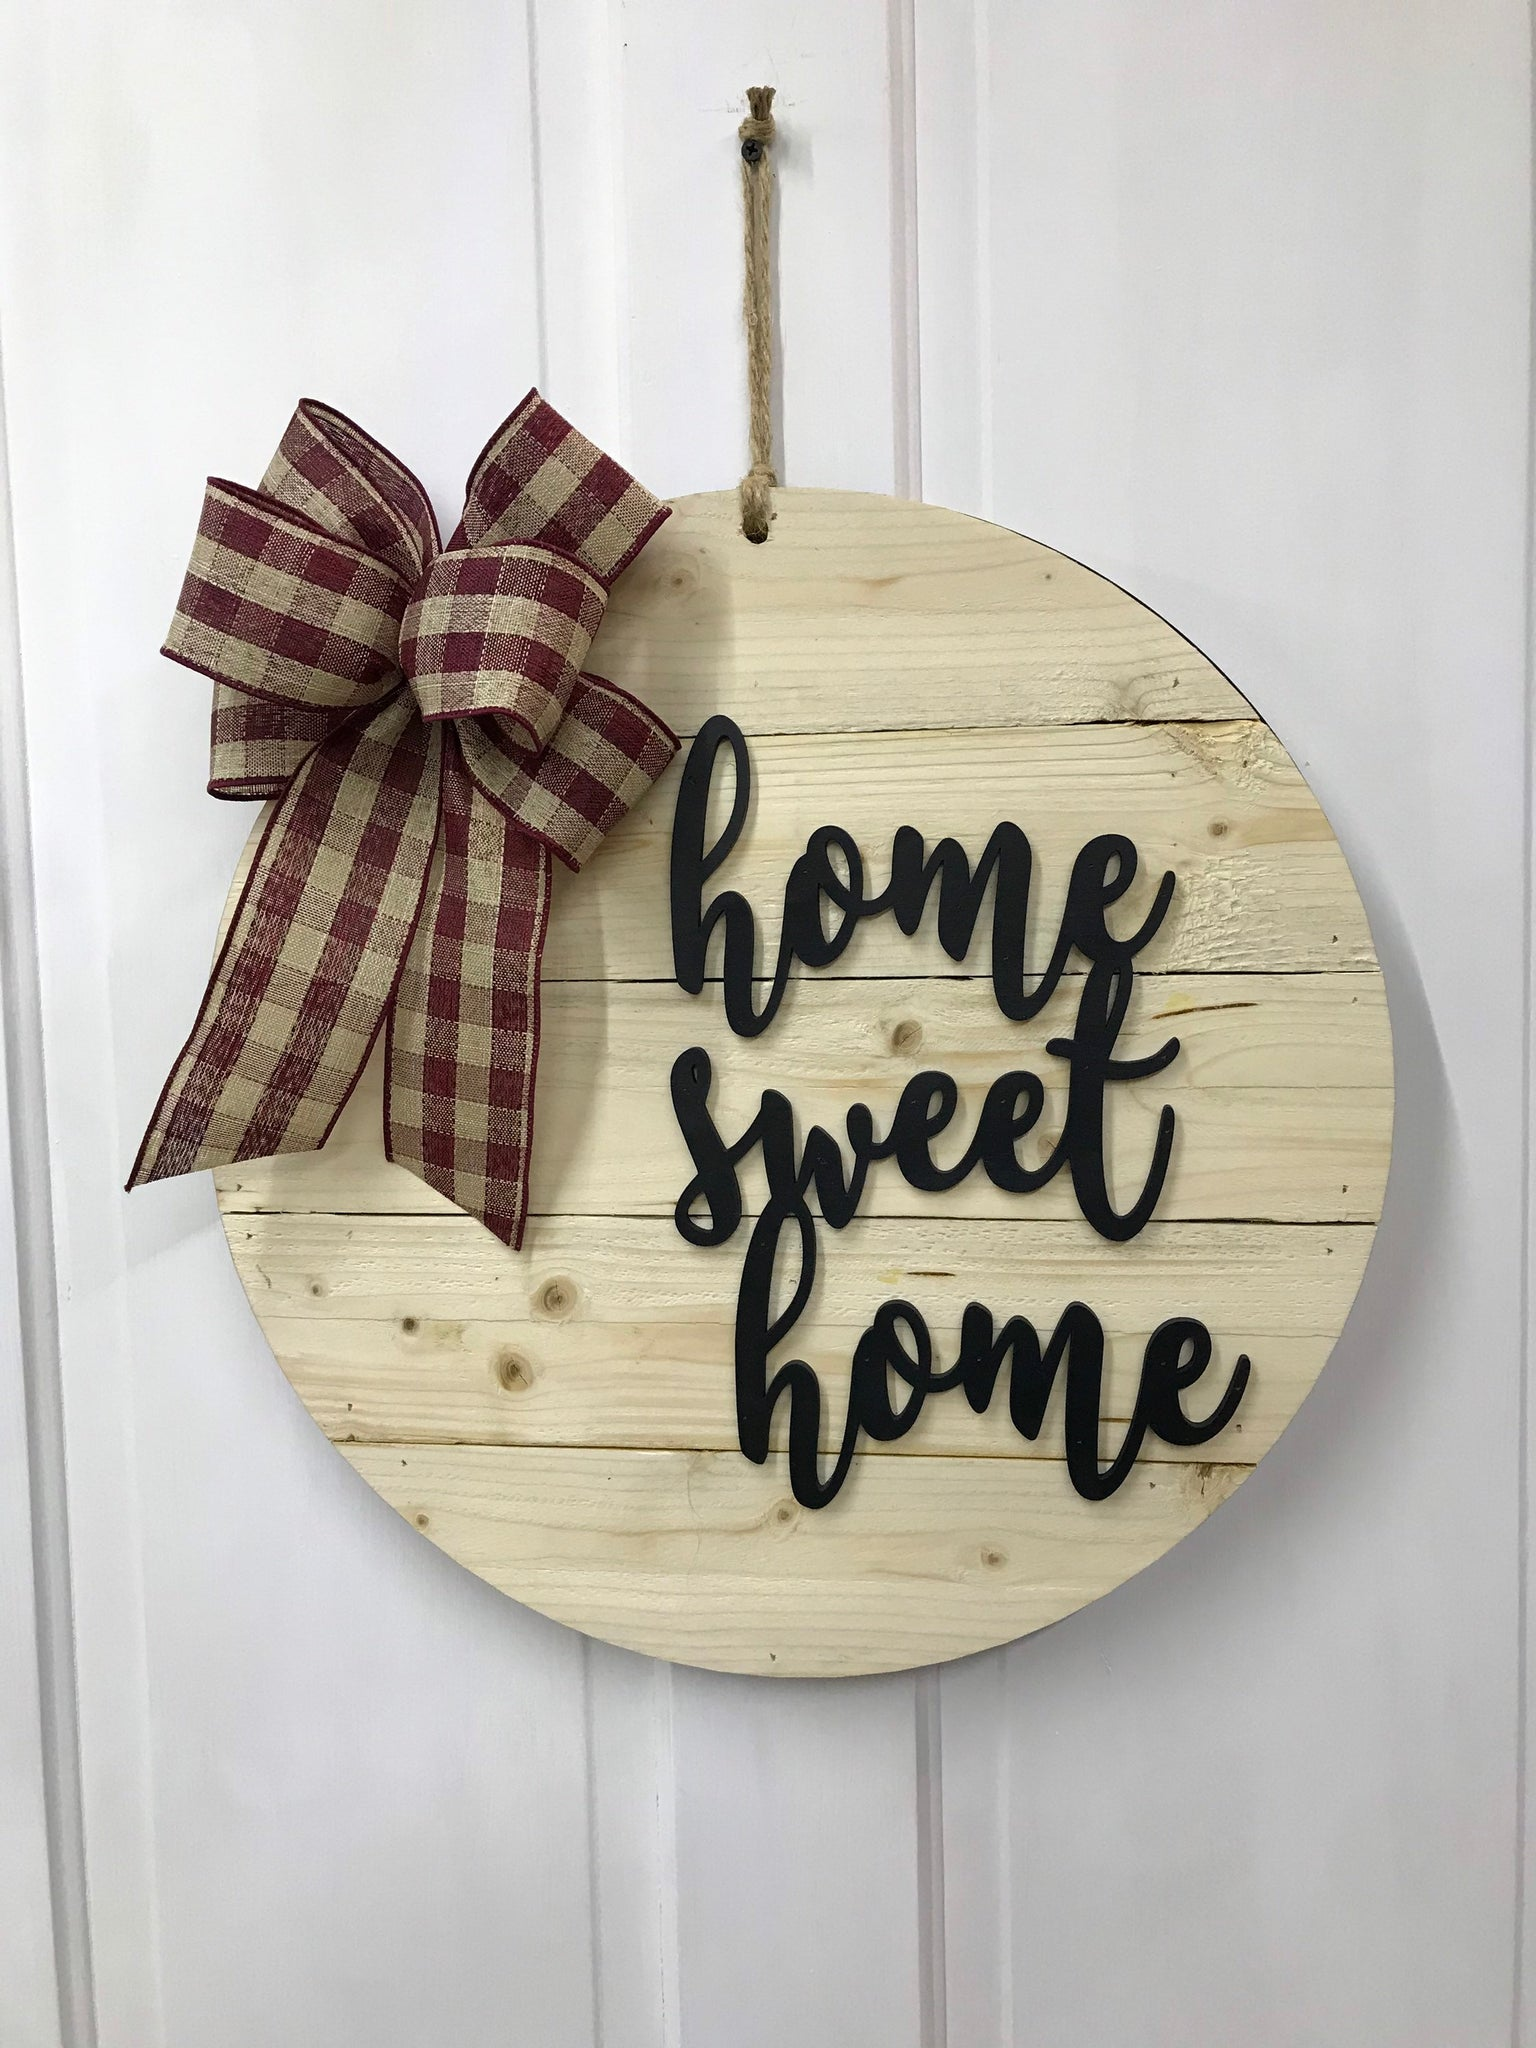 Home Sweet Home Door Hanger - Rustic Shiplapped Urban Farmhouse Wood Wall Decor - Great Housewarming Gift